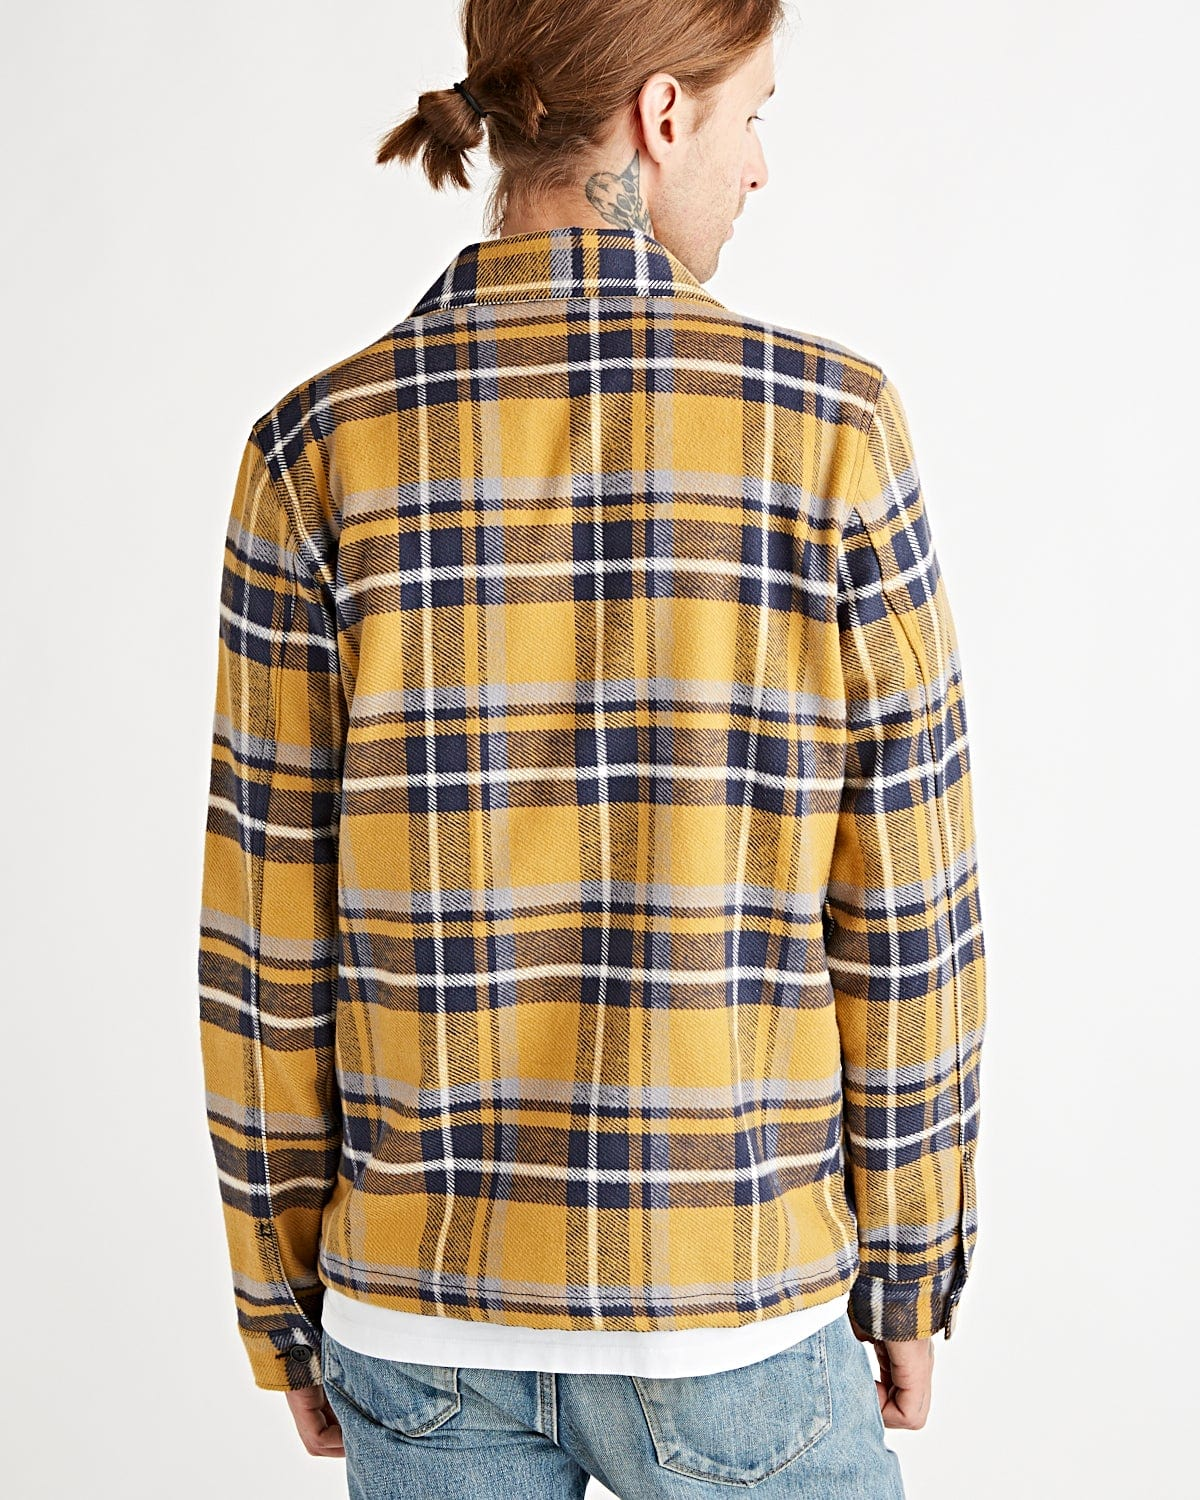 Work Shirt - Heavy Weight Vintage Flannel Blue / Yellow